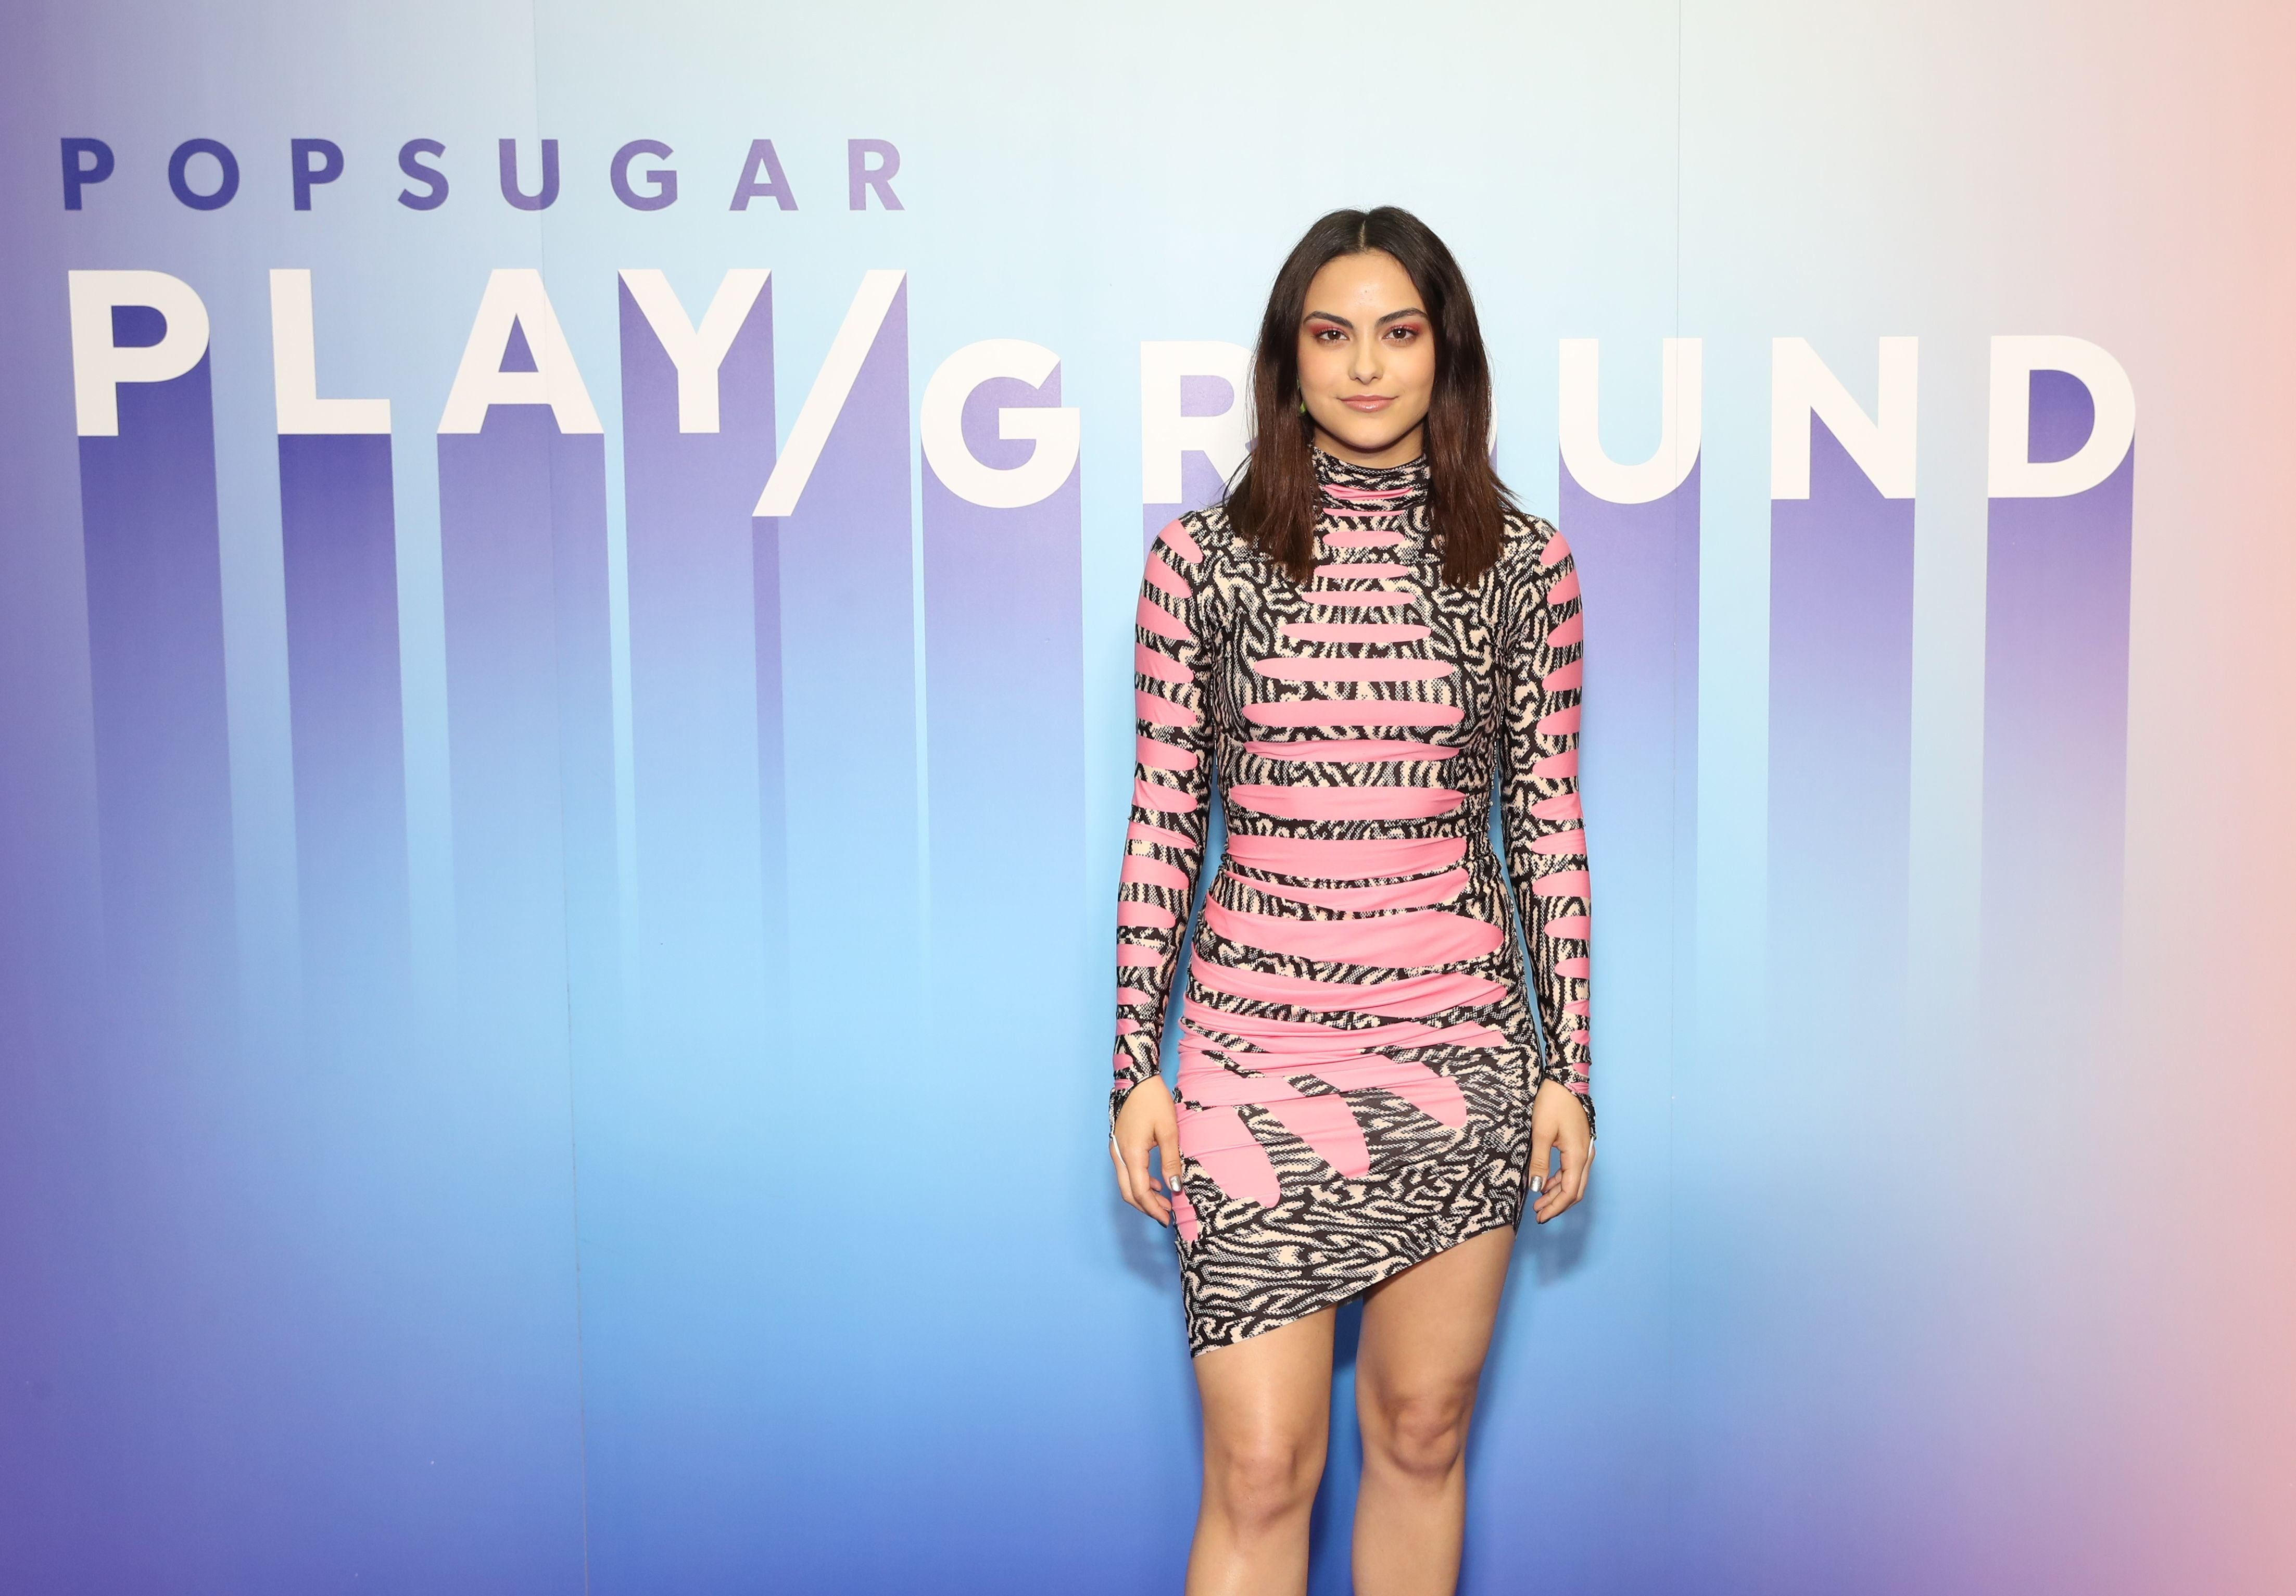 Camila Mendes at the POPSUGAR Play/ground at Pier 94 on June 22, 2019 in New York City. | Photo: Getty Images